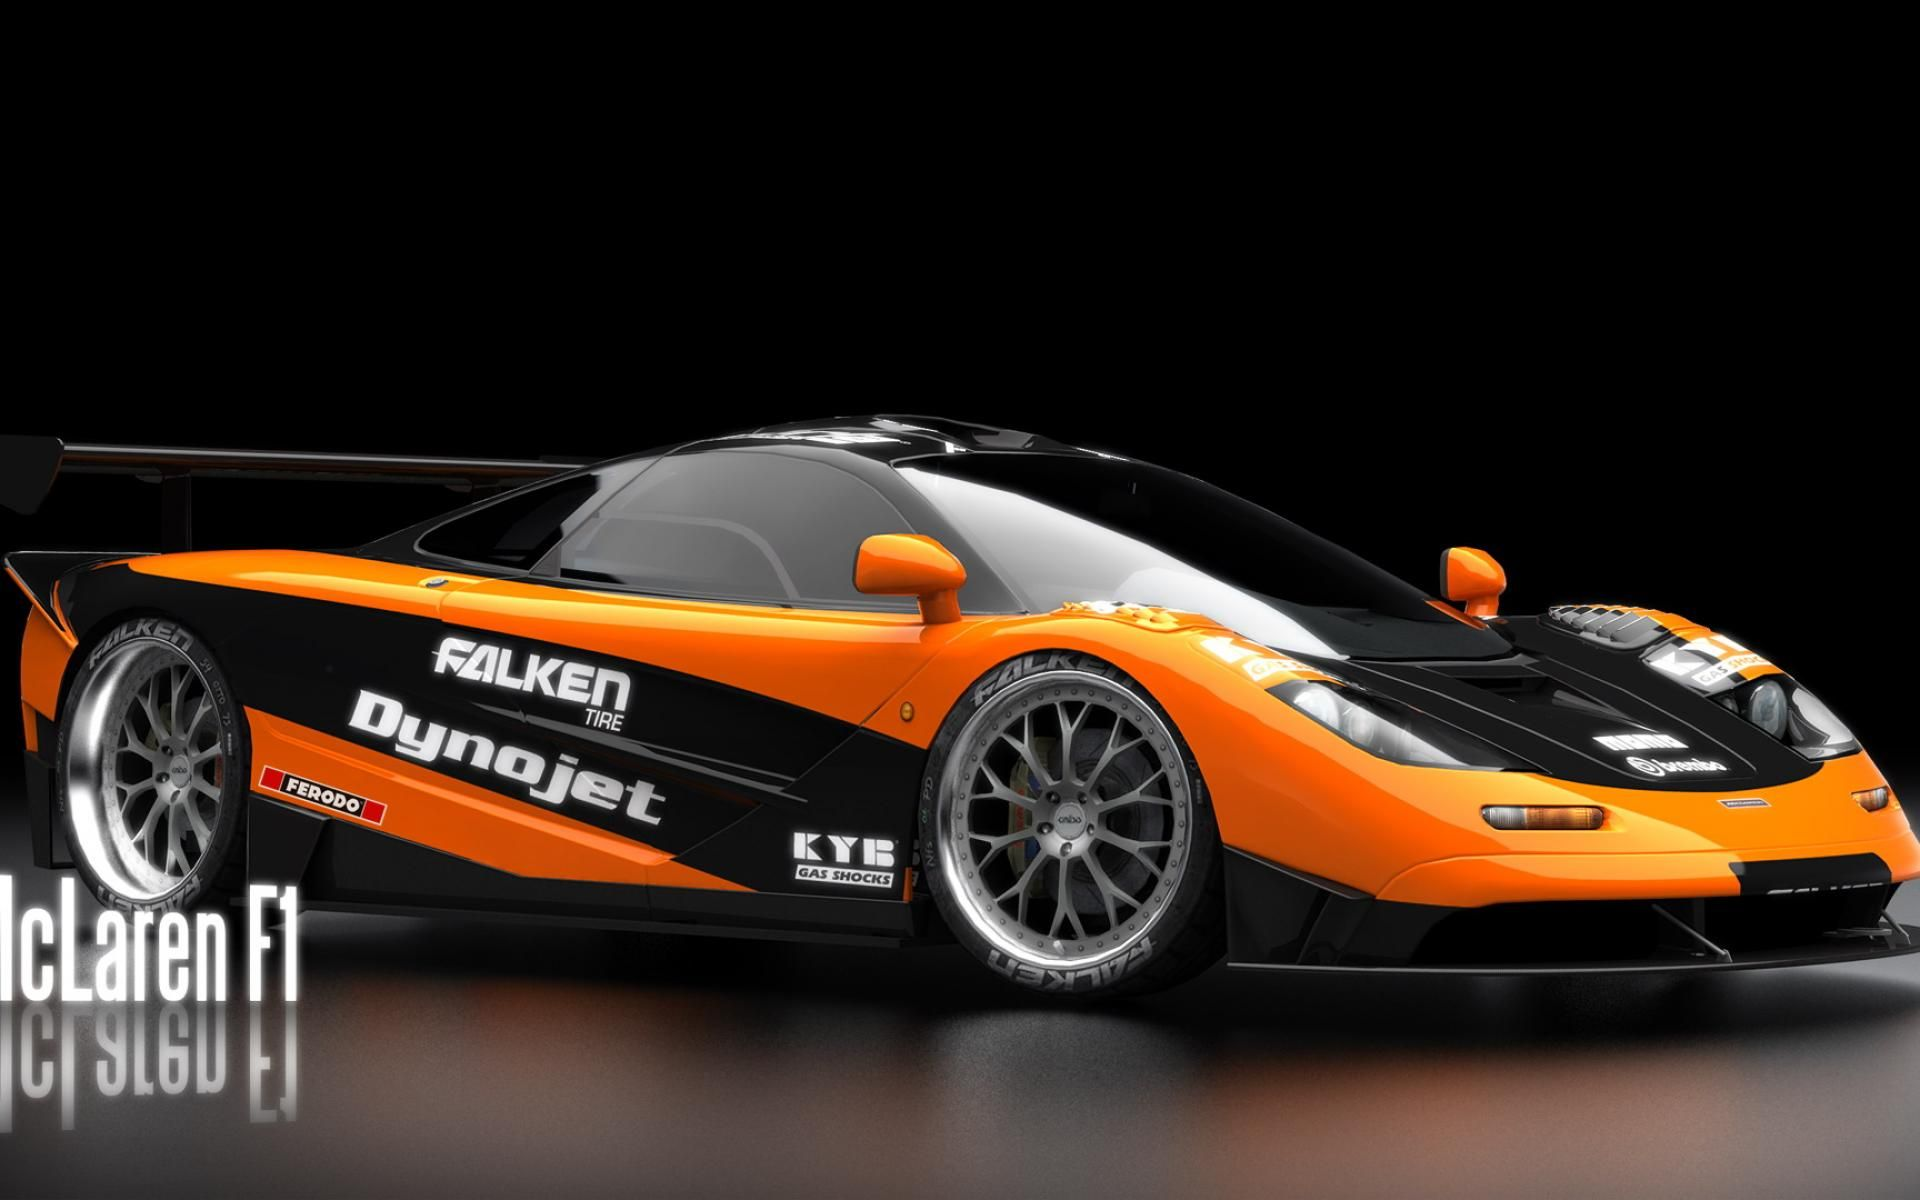 Cool | Very Cool Mclaren F1 hd wallpaper picture 1920x1200 windows